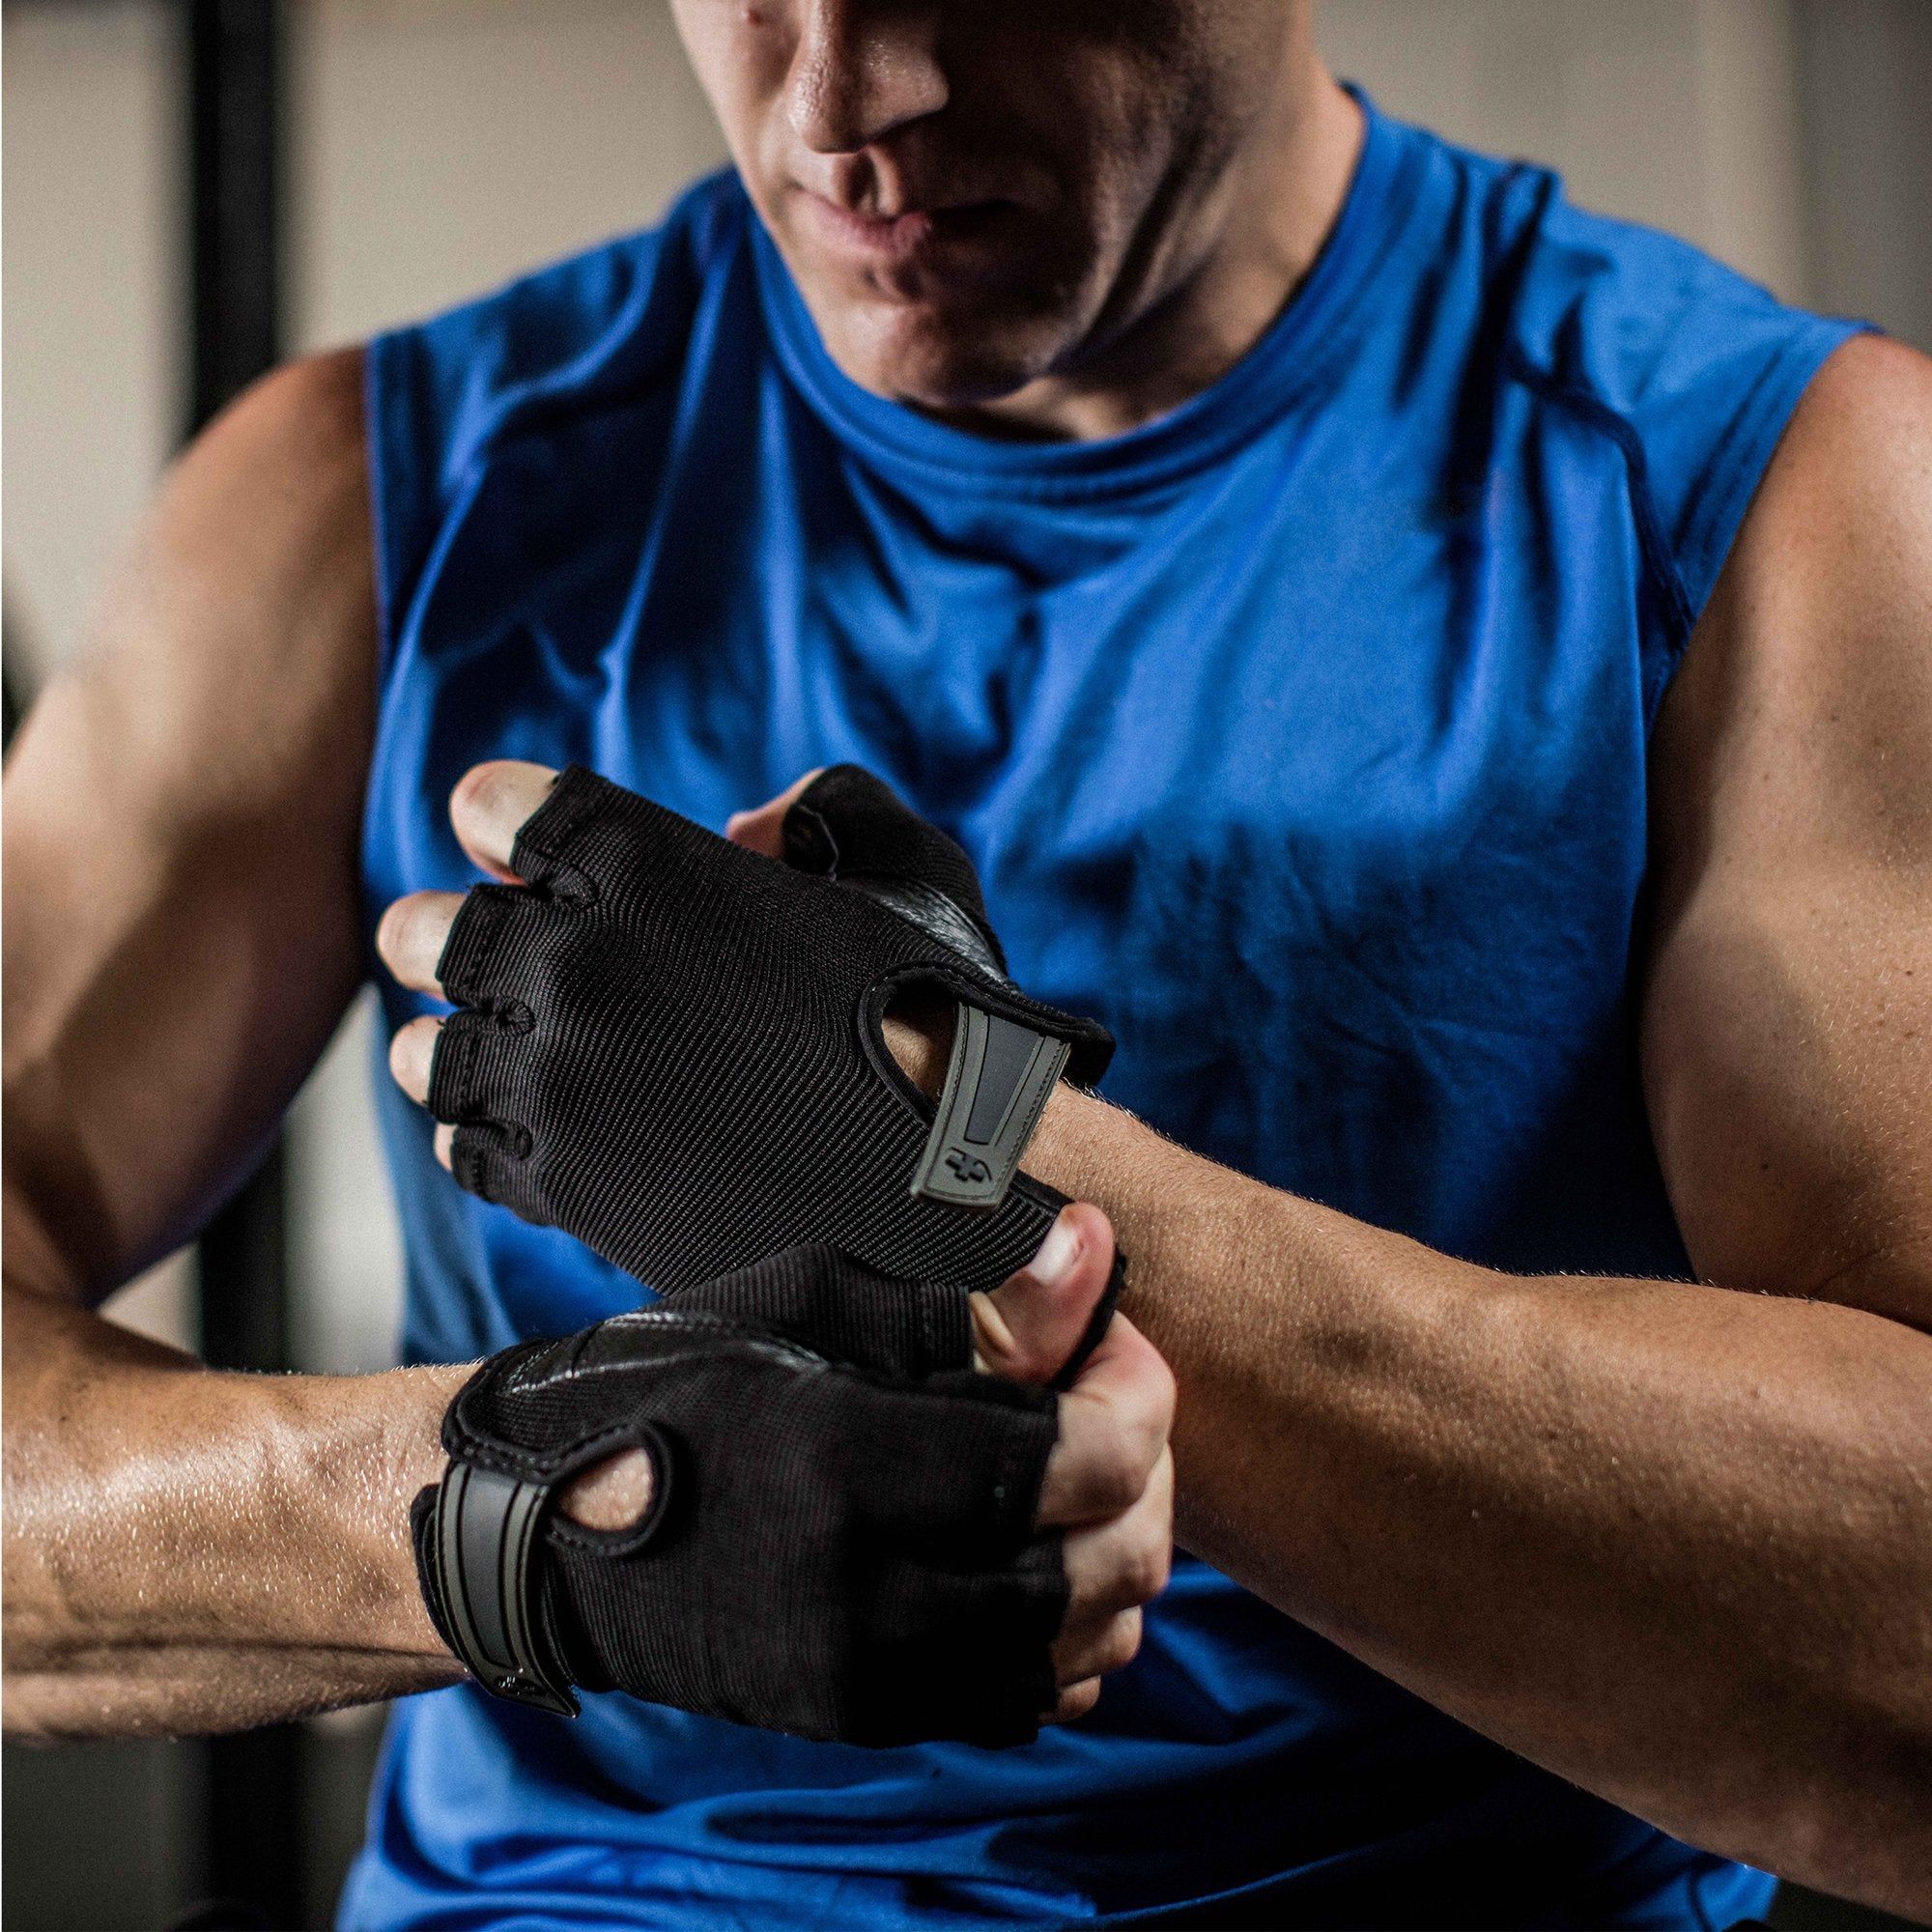 Harbinger Power Non-Wristwrap Weightlifting Gloves with StretchBack Mesh and Leather Palm (Pair), Large - yrGear